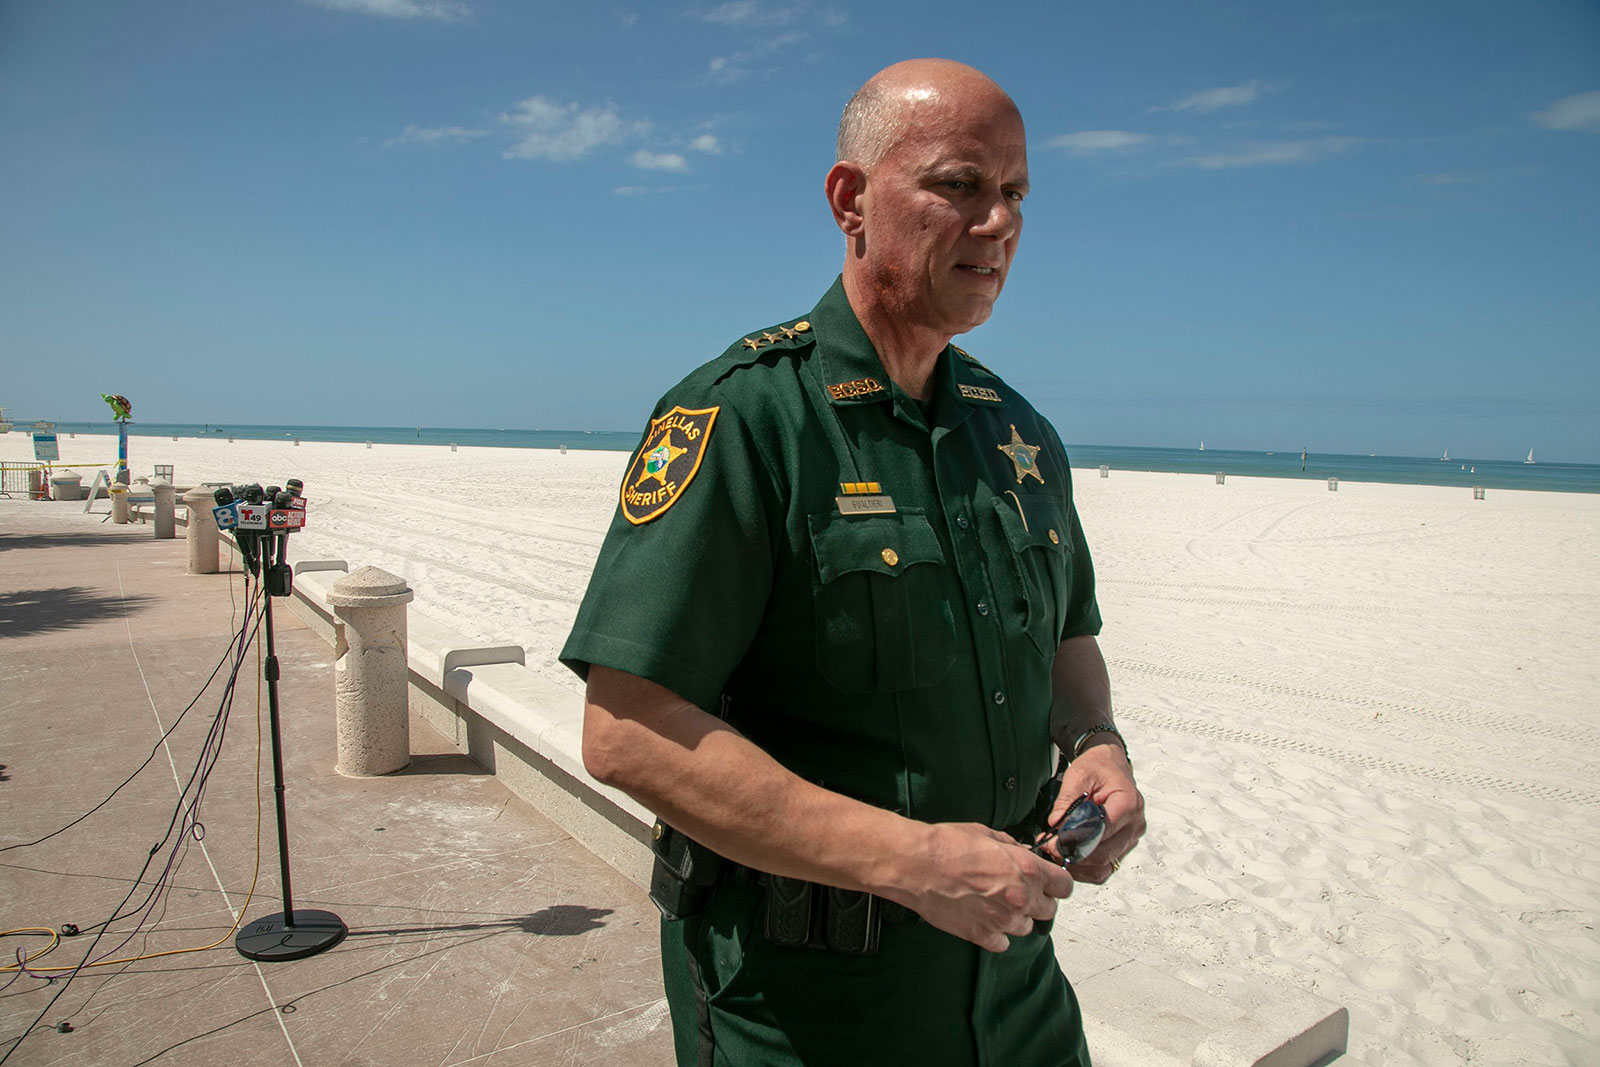 Pinellas County Sheriff Bob Gualtieri at a press conference on March 21 in Clearwater Beach, Florida.